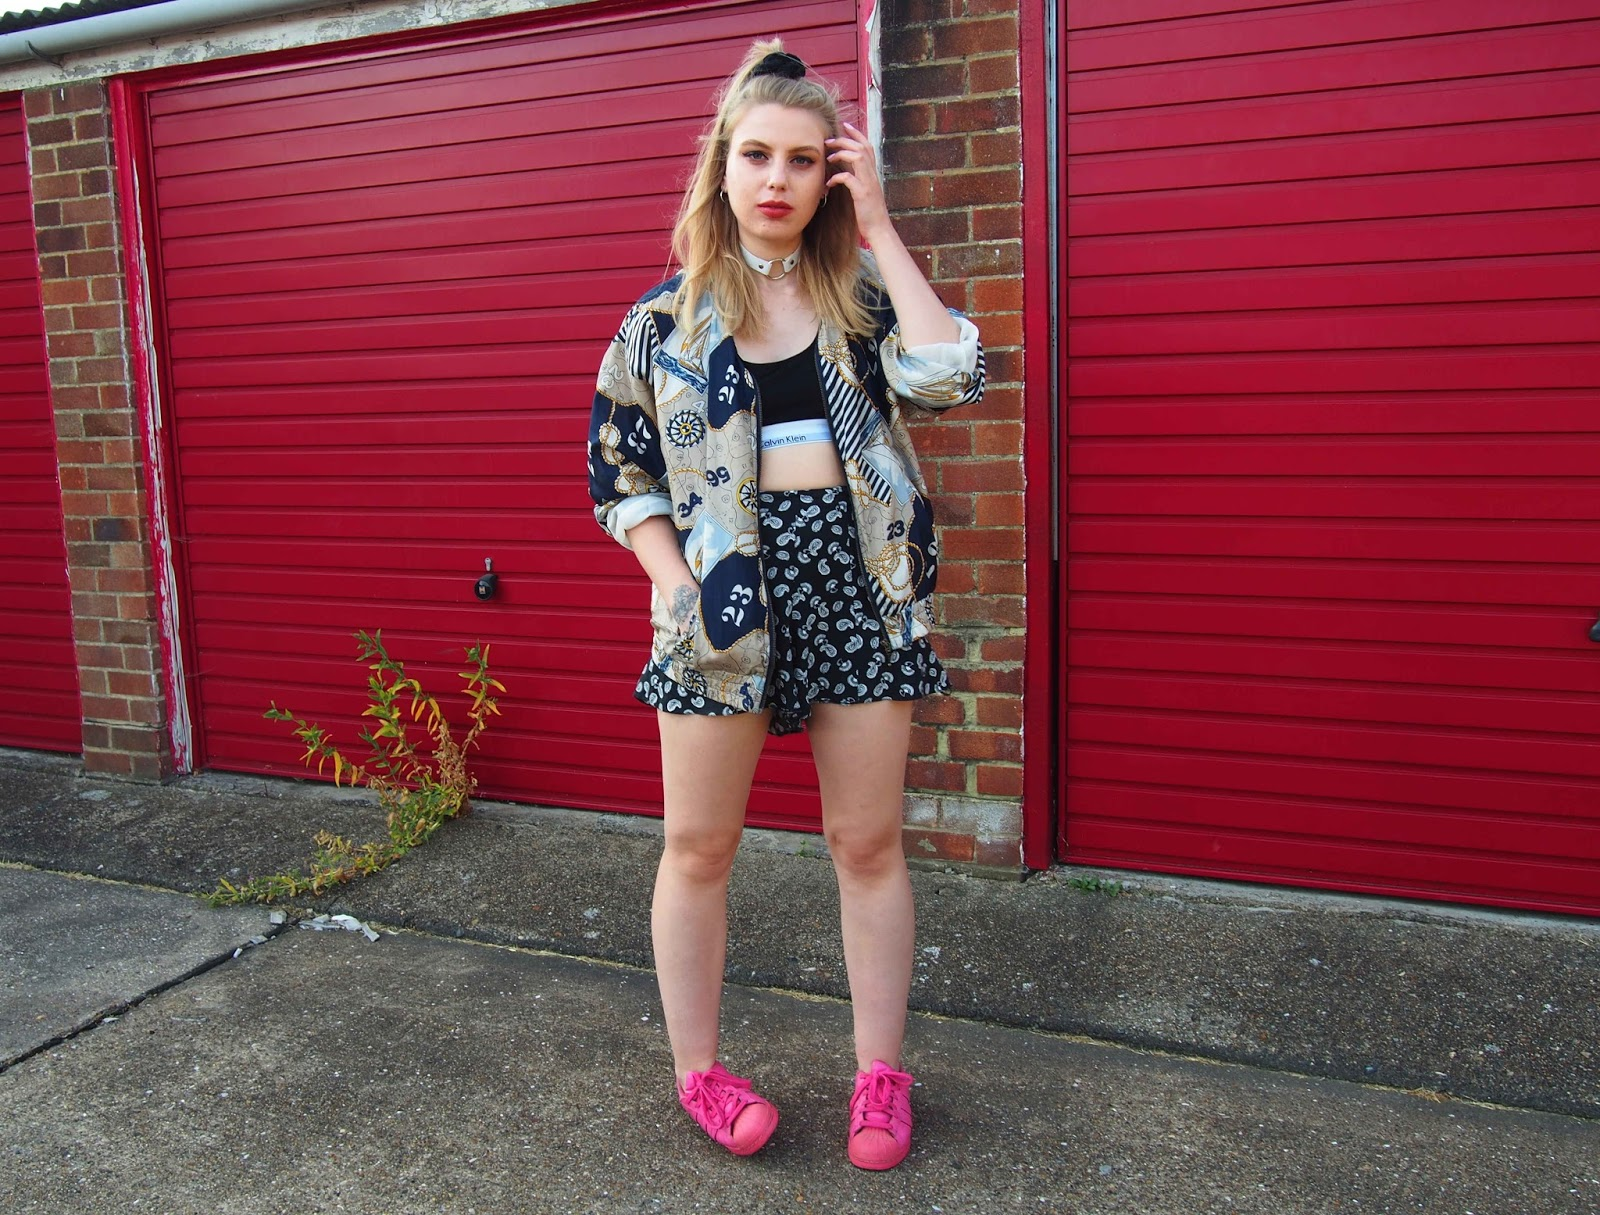 how to style a calvin klein bralette, vintage bomber jacket, grunge alternative fashion style inspiration, pink supercolour superstars, o ring choker 1